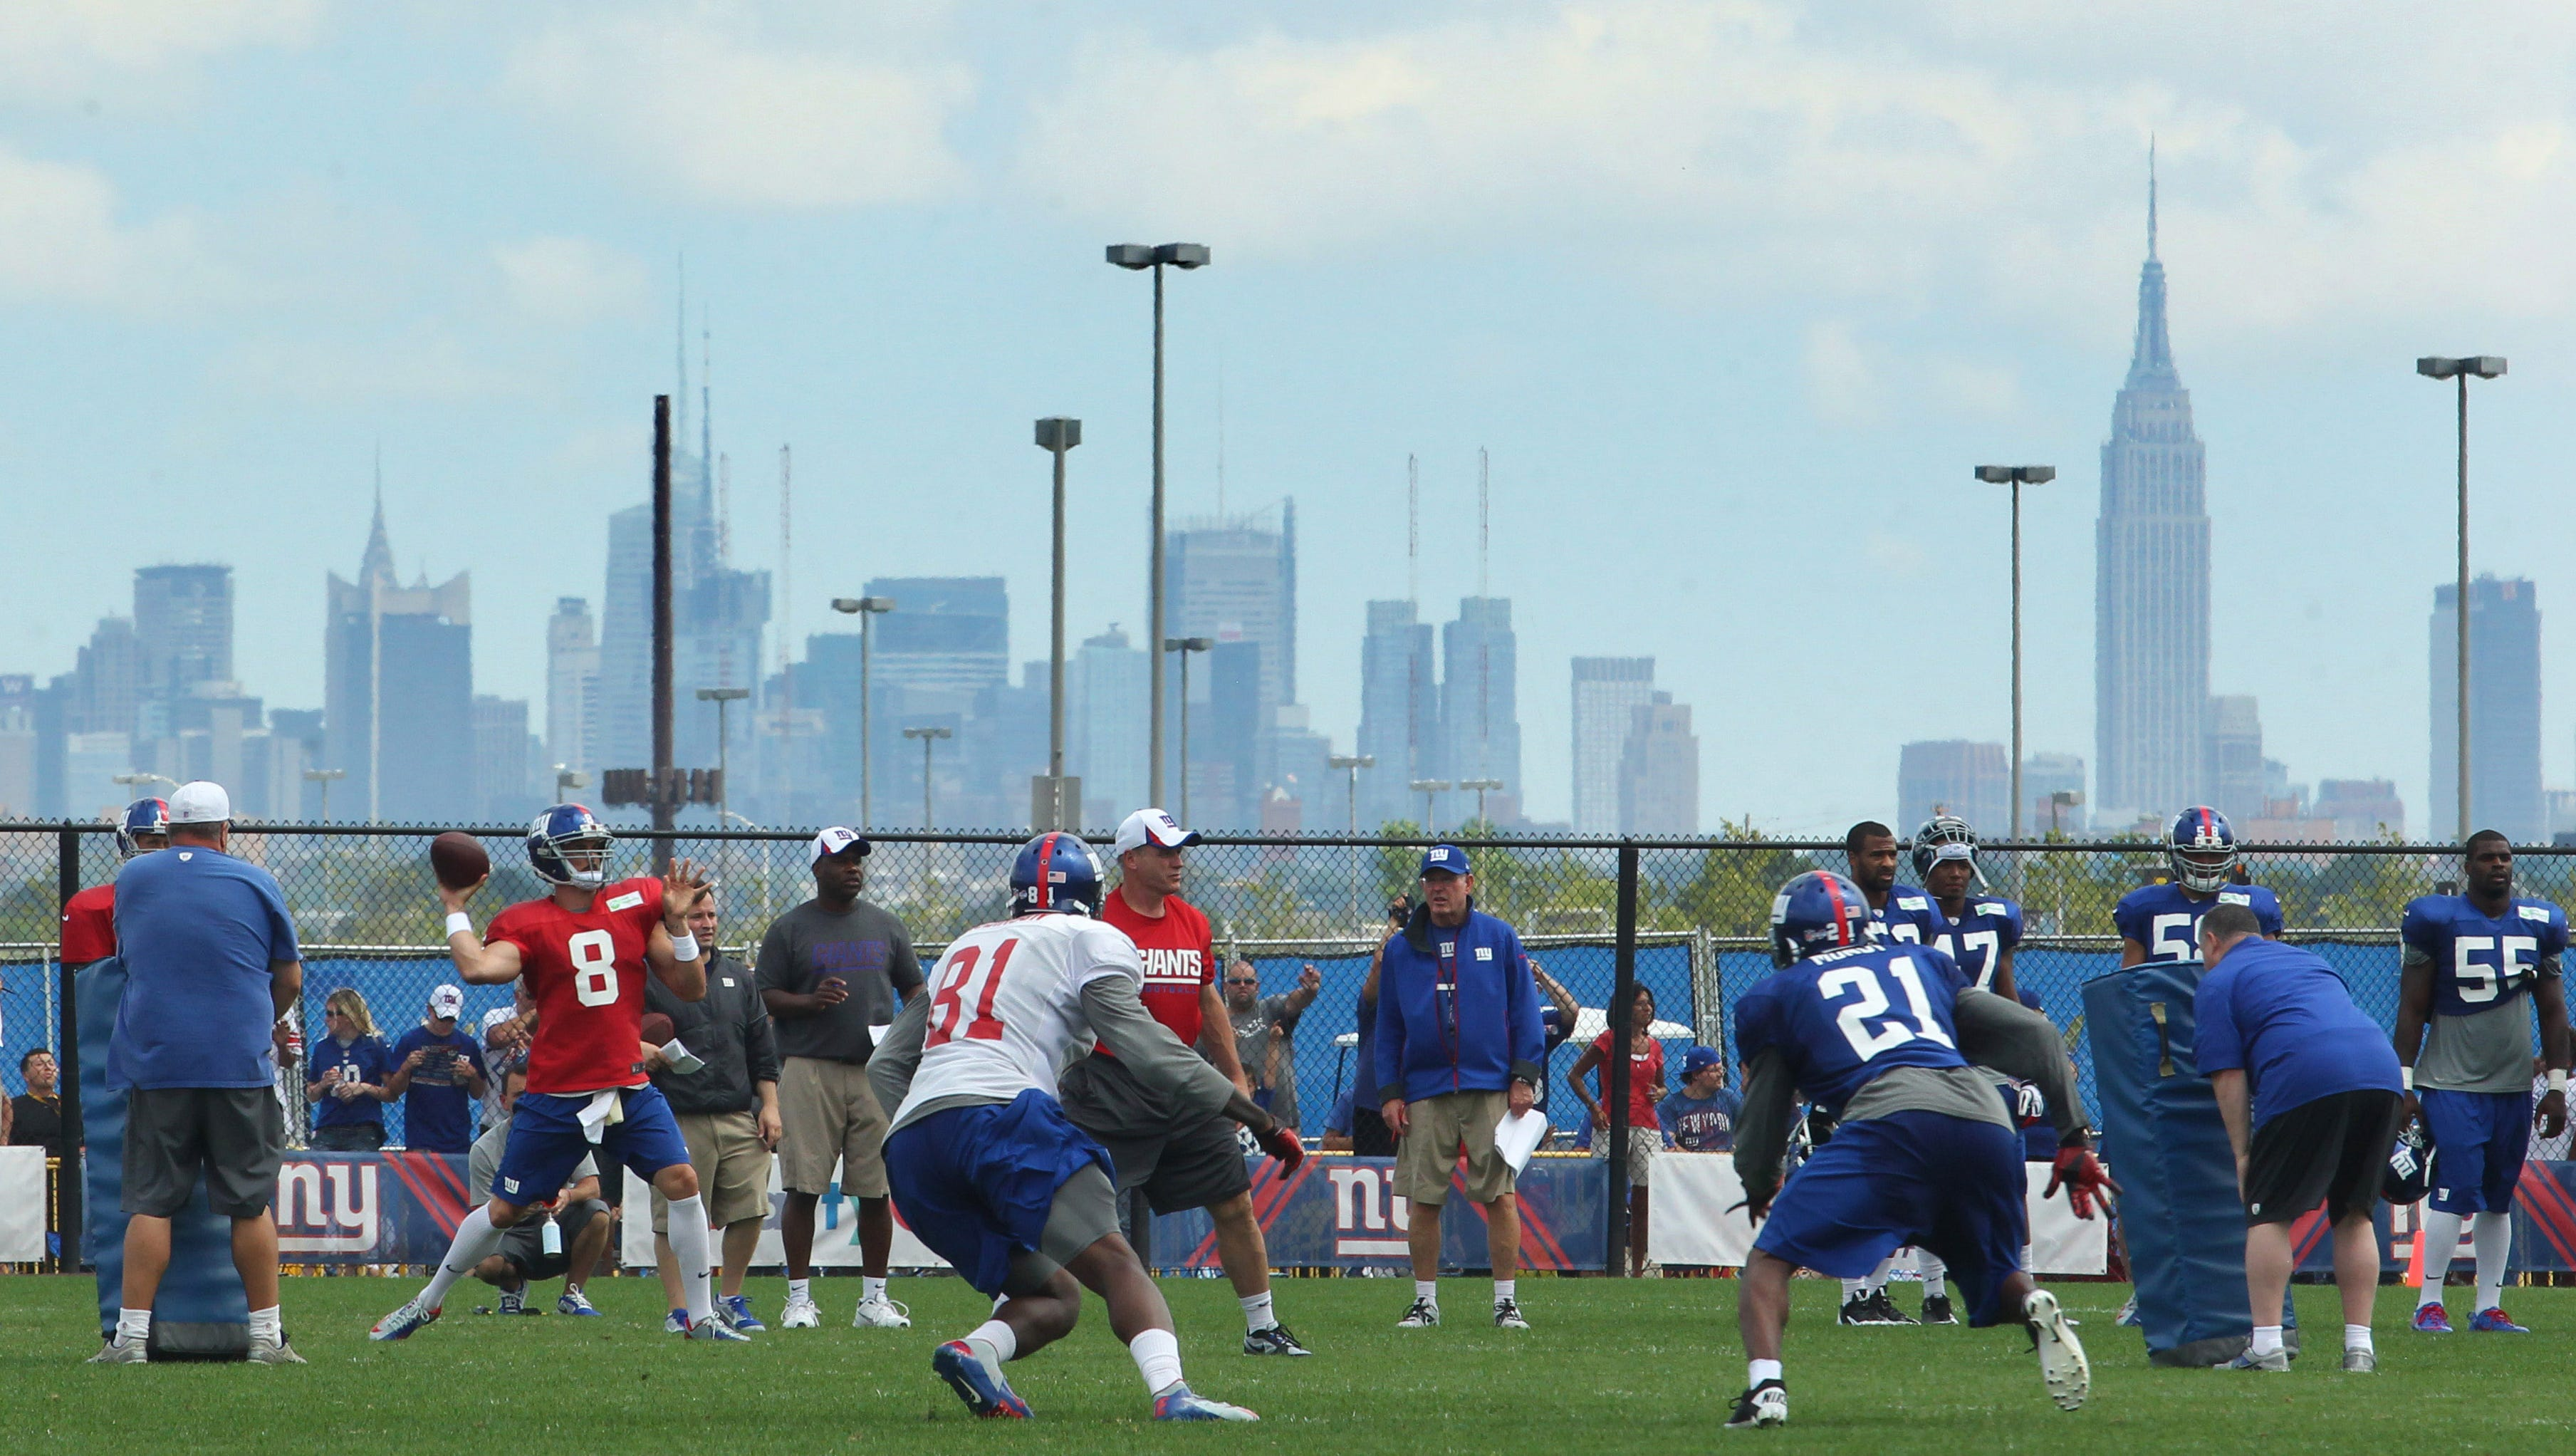 The Giants practice in East Rutherford, N.J., on Aug. 7 with the New York skyline as the backdrop.